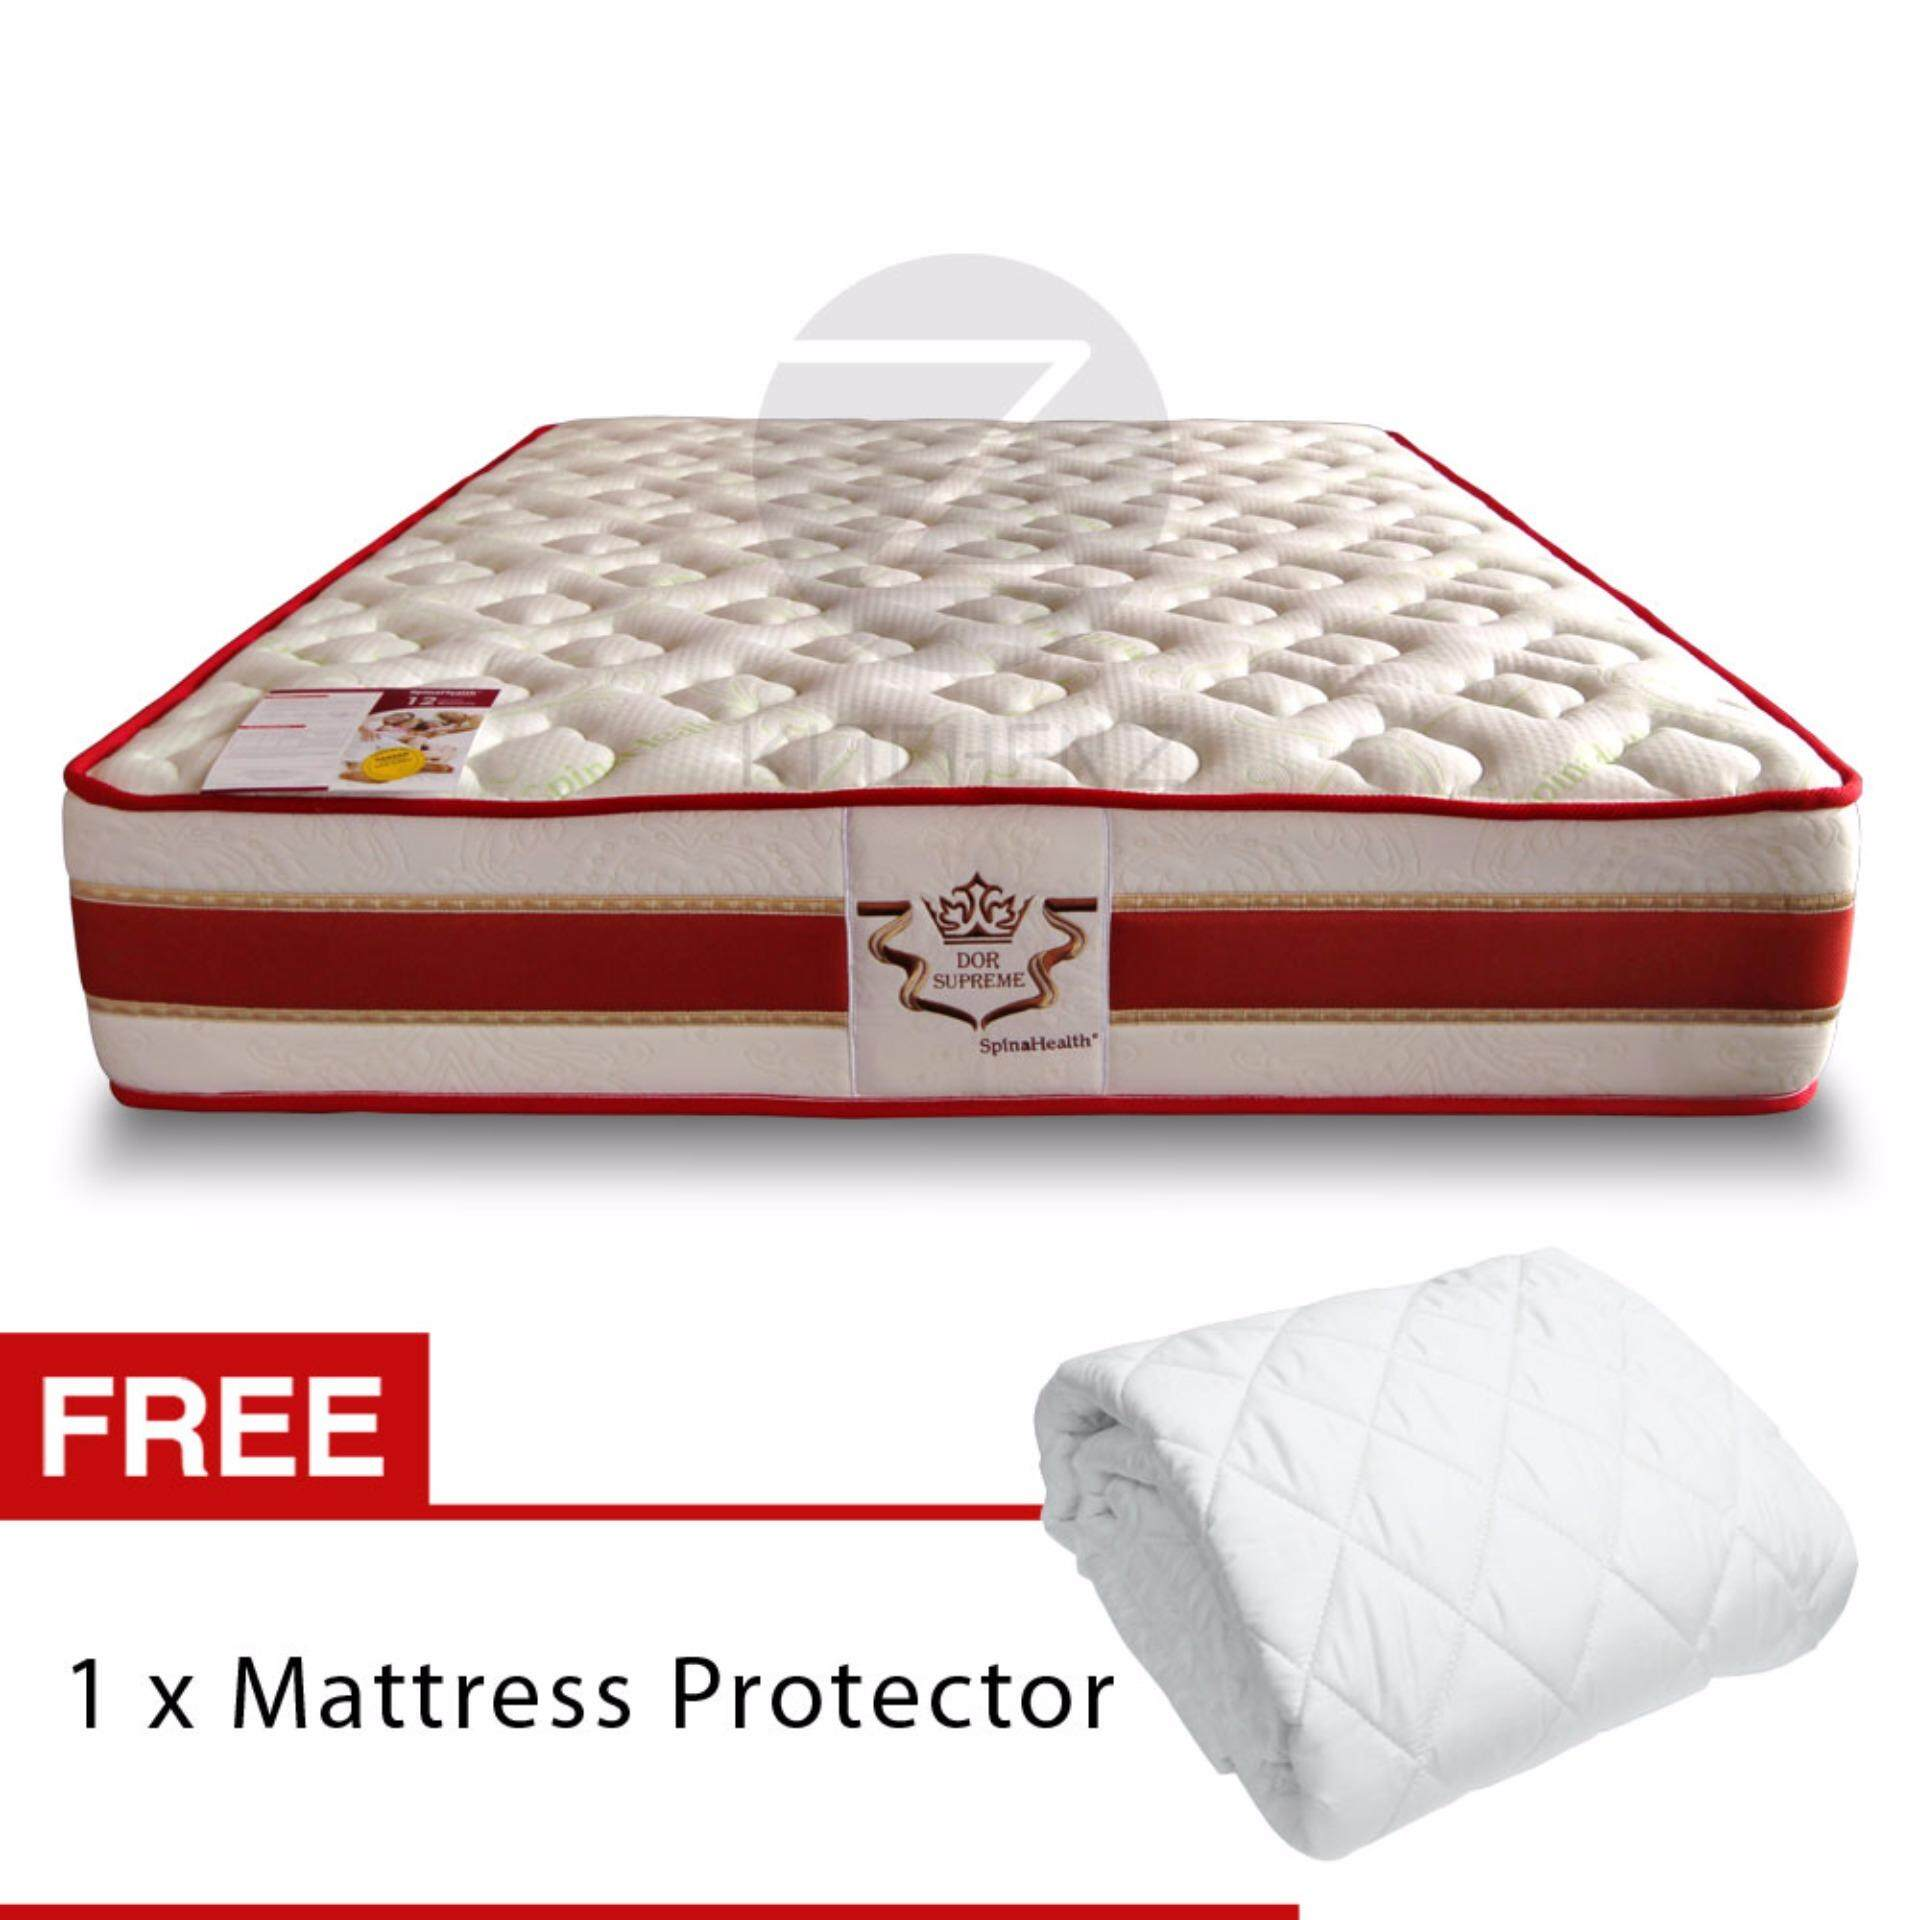 limited unit only homez series dor supreme 12inch 3zone individual pocket spring mattress queen size lazada malaysia - Spring Mattress